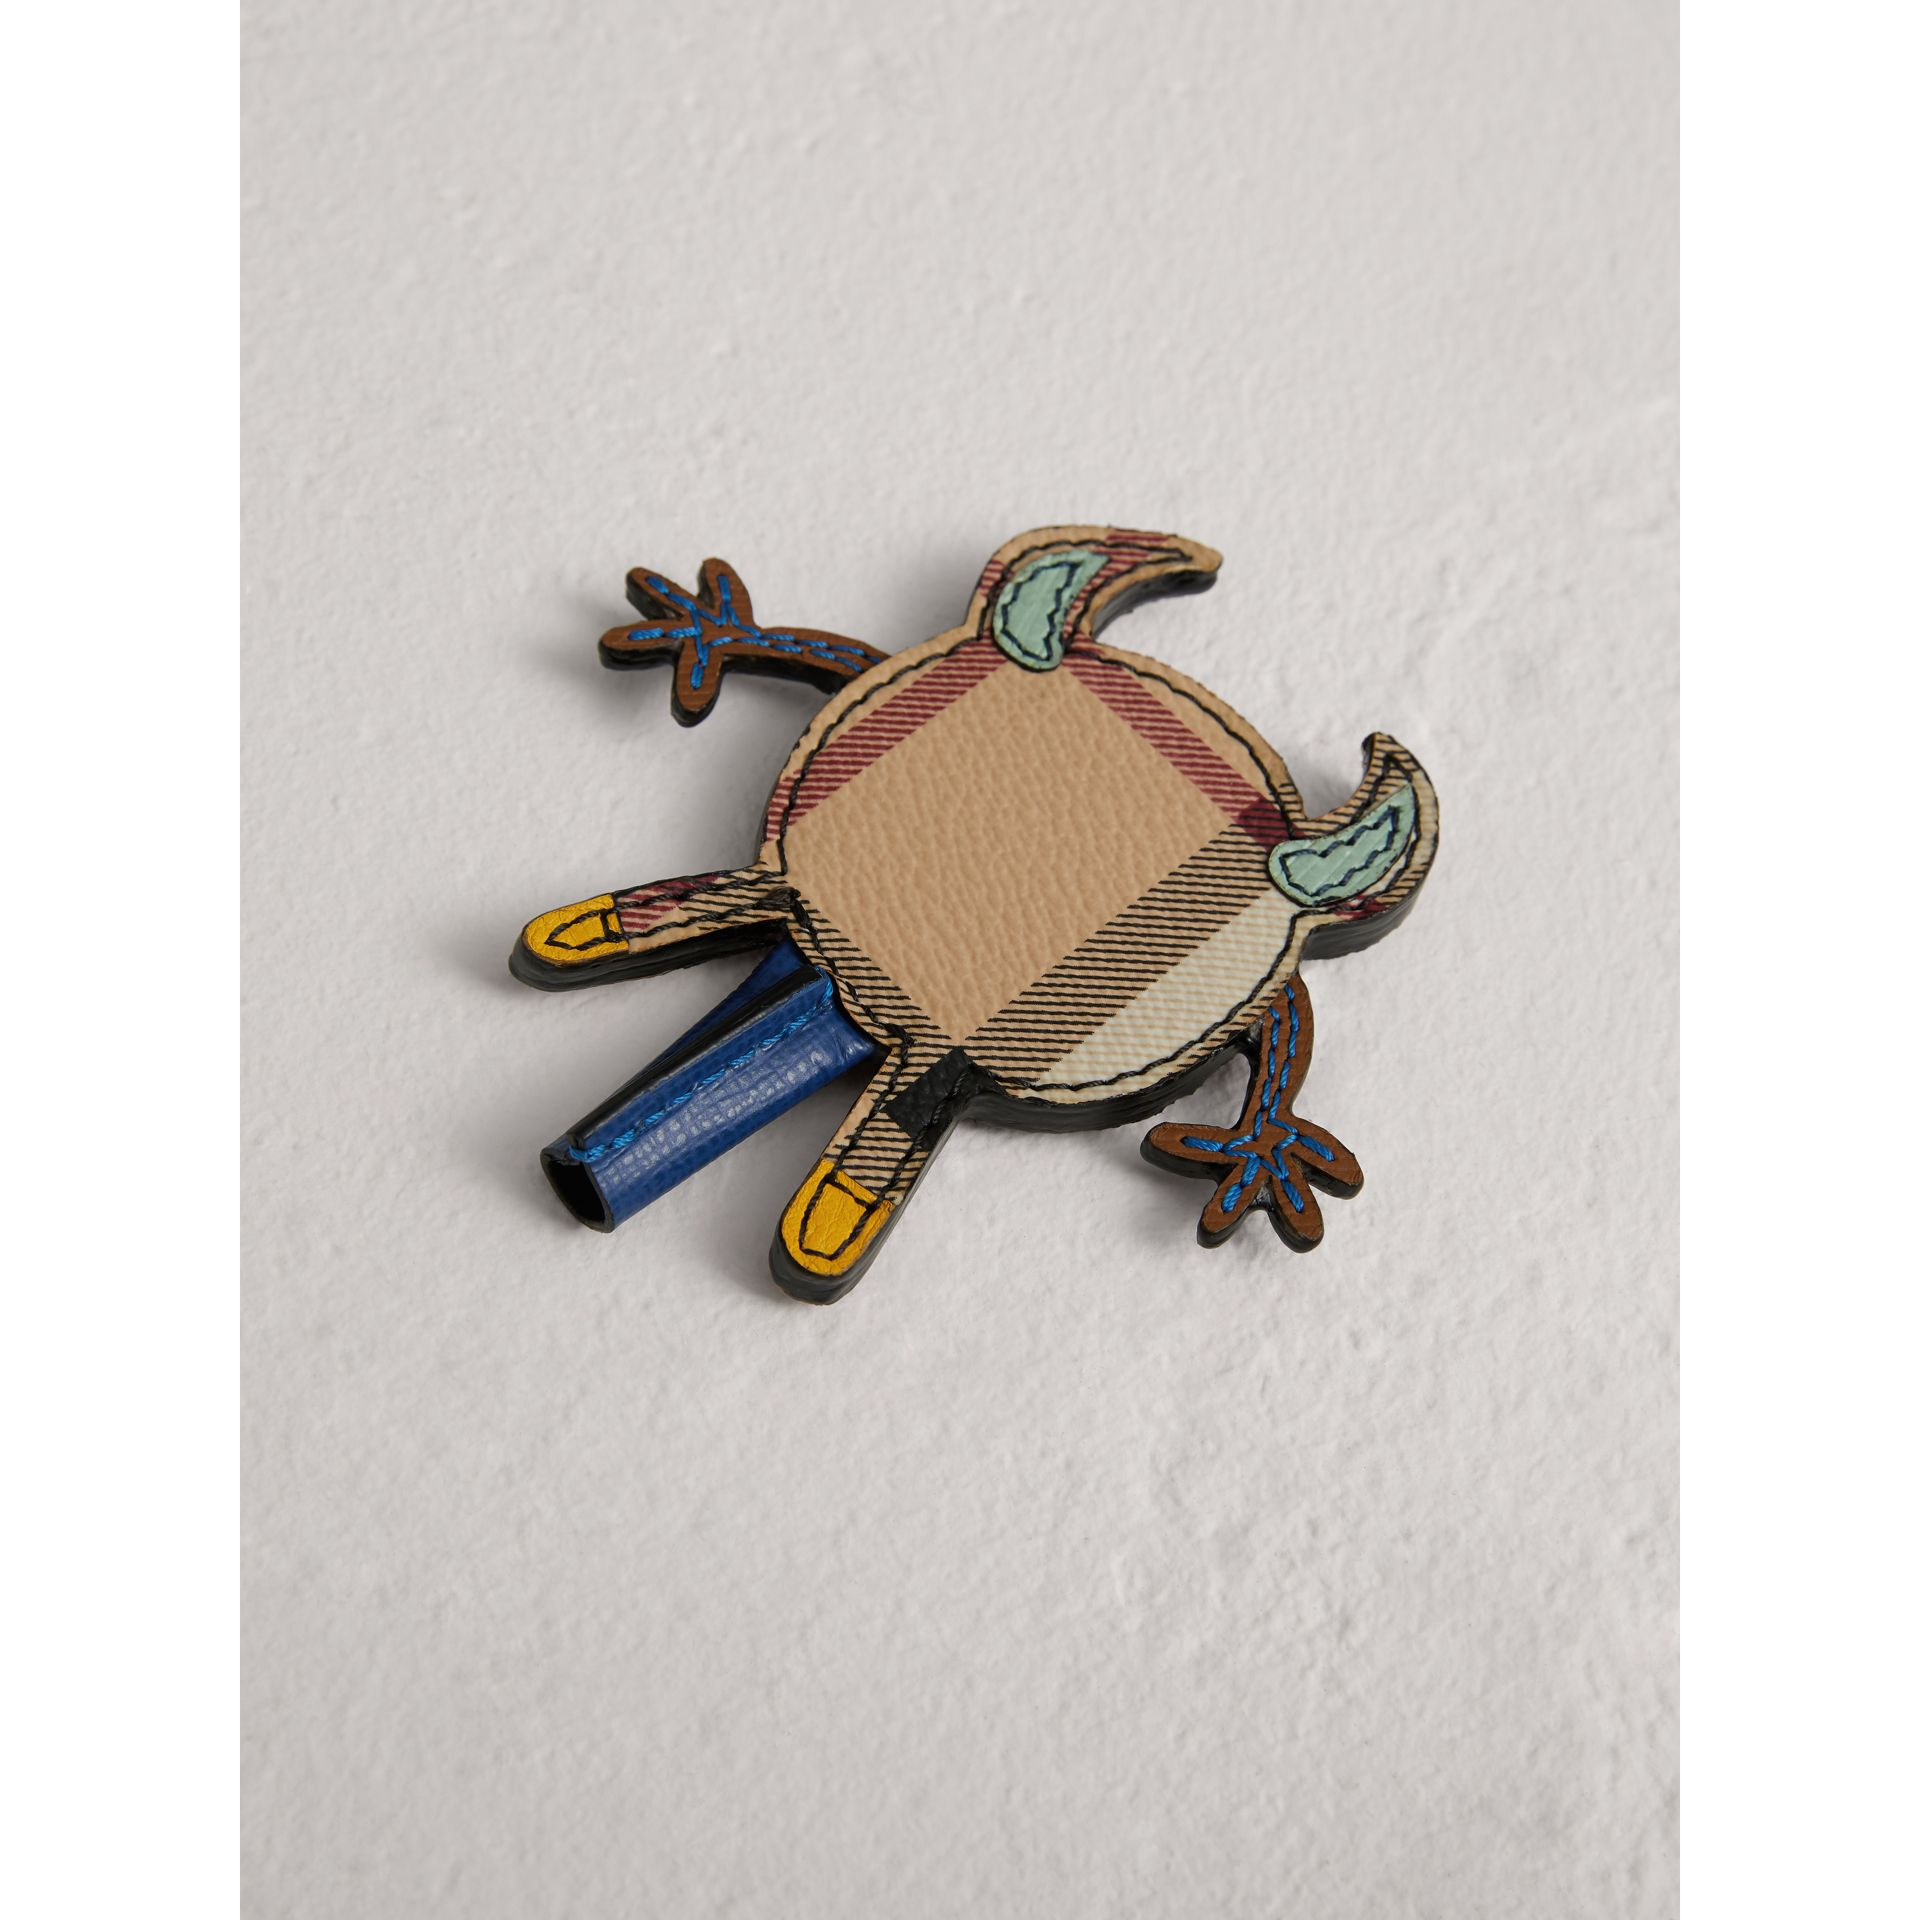 Creature Appliqué Leather Trim Pencil Topper in Multicolour | Burberry - gallery image 3